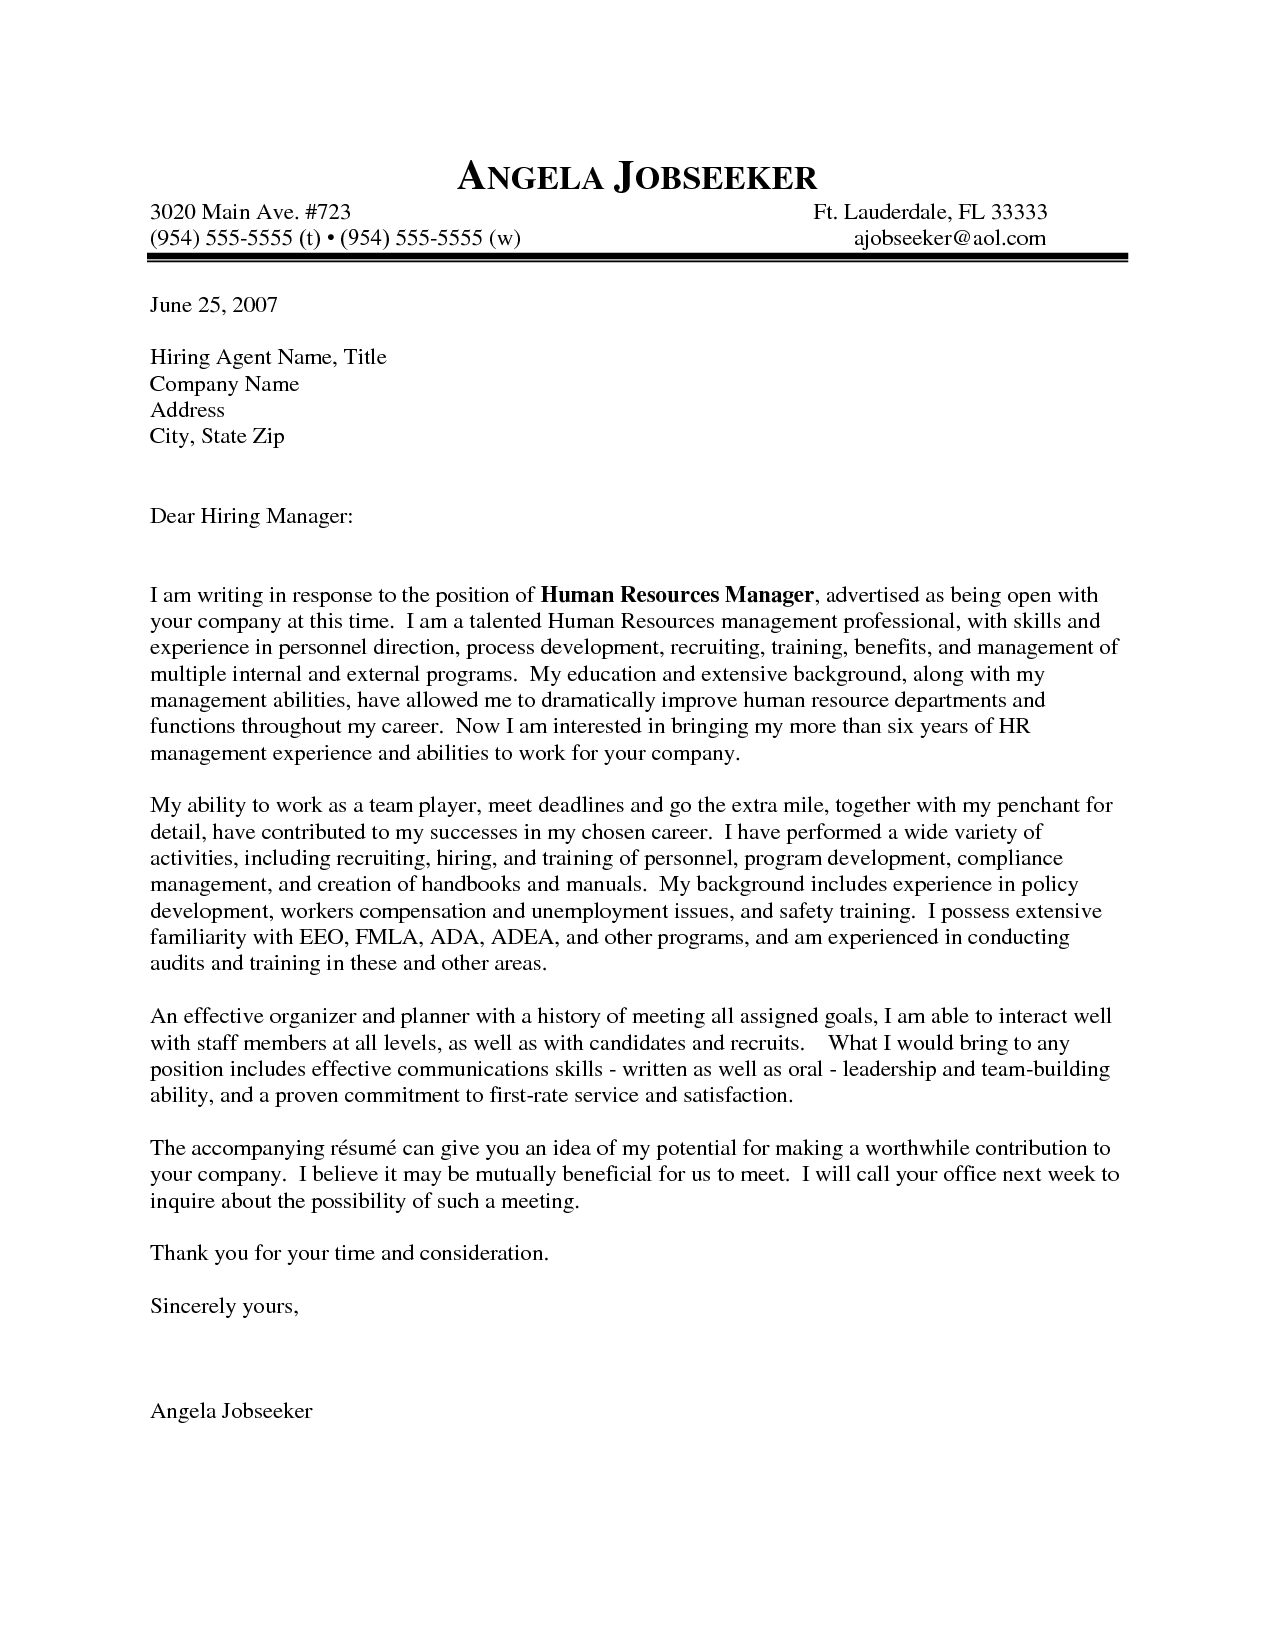 Cover Letter Addressed To Sample Cover Letter